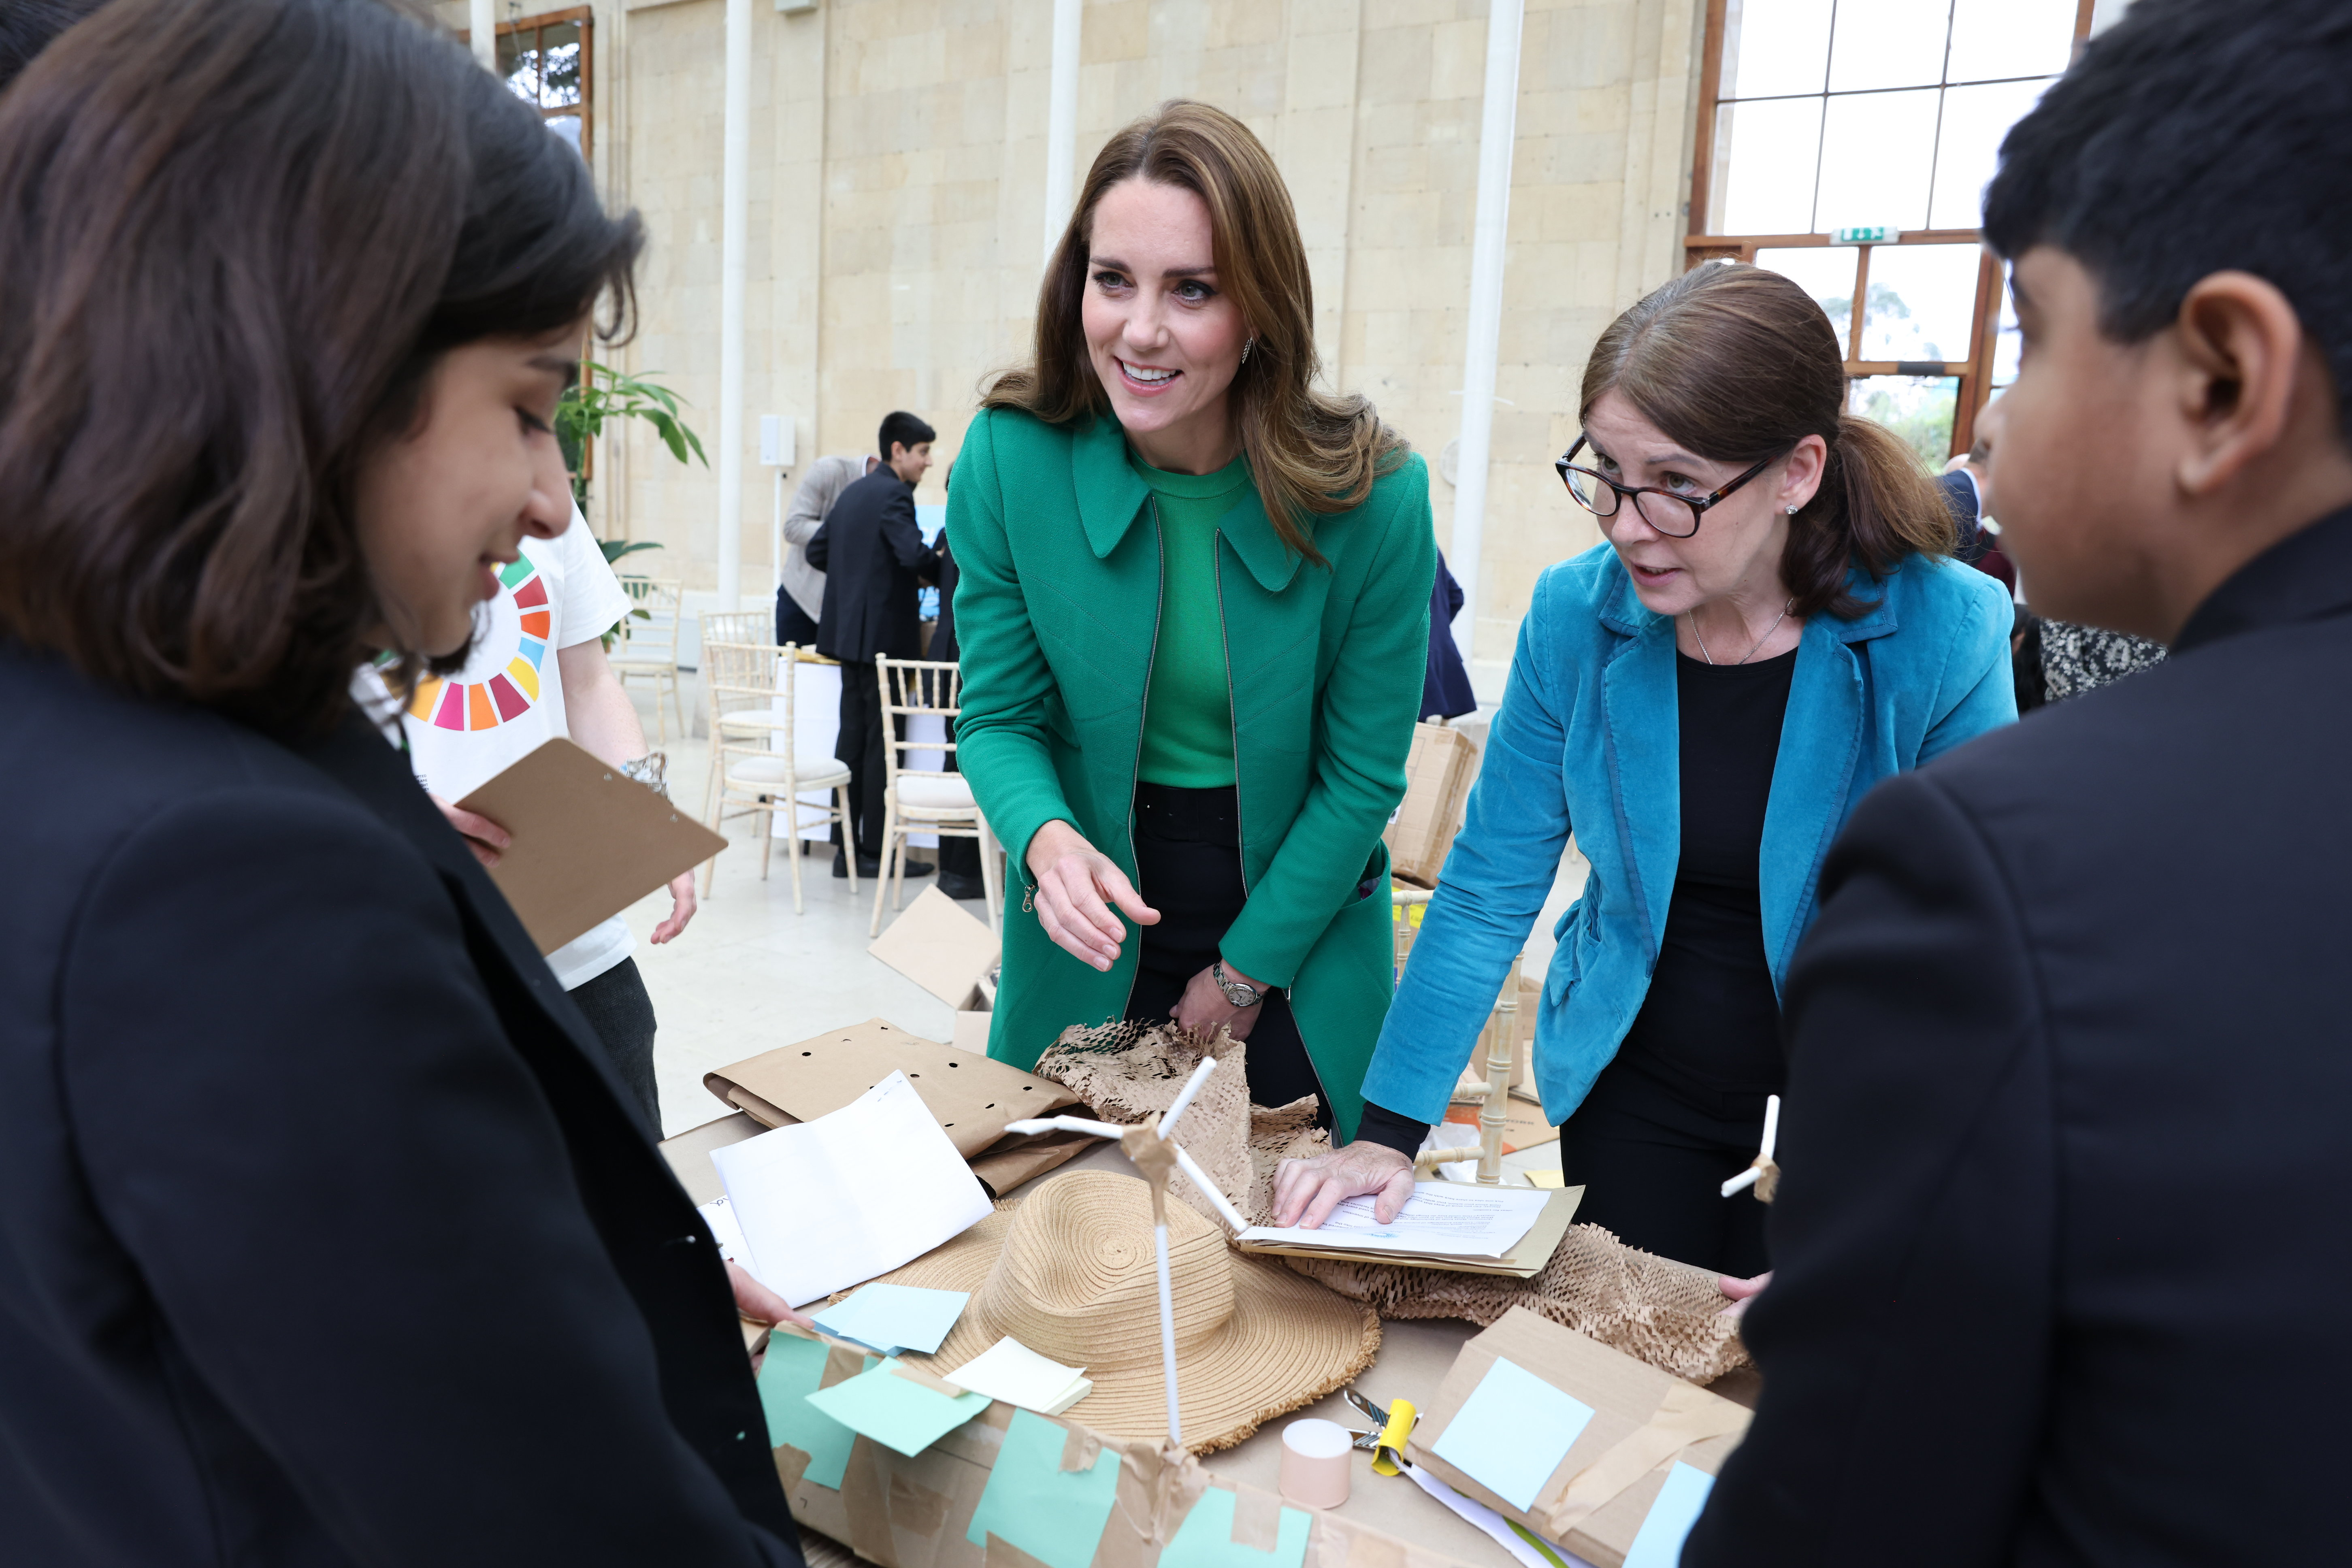 LONDON, ENGLAND - OCTOBER 13: Prince William, Duke of Cambridge (not pictured) and Catherine, Duchess of Cambridge visit Kew Gardens to take part in a Generation Earthshot event with children from The Heathlands School, Hounslow to generate big, bold ideas to repair the planet and to help spark a lasting enthusiasm for the natural world on October 13, 2021 in London, England. At the Royal Botanic Gardens, Their Royal Highnesses will join the Mayor of London; explorer, naturalist and presenter Steve Backshall MBE; Olympian Helen Glover and students to take part in a series of fun, engaging and thought-provoking activities developed as part of Generation Earthshot, an educational initiative inspired by The Earthshot Prize. (Photo by Ian Vogler-WPA Pool/Getty Images)